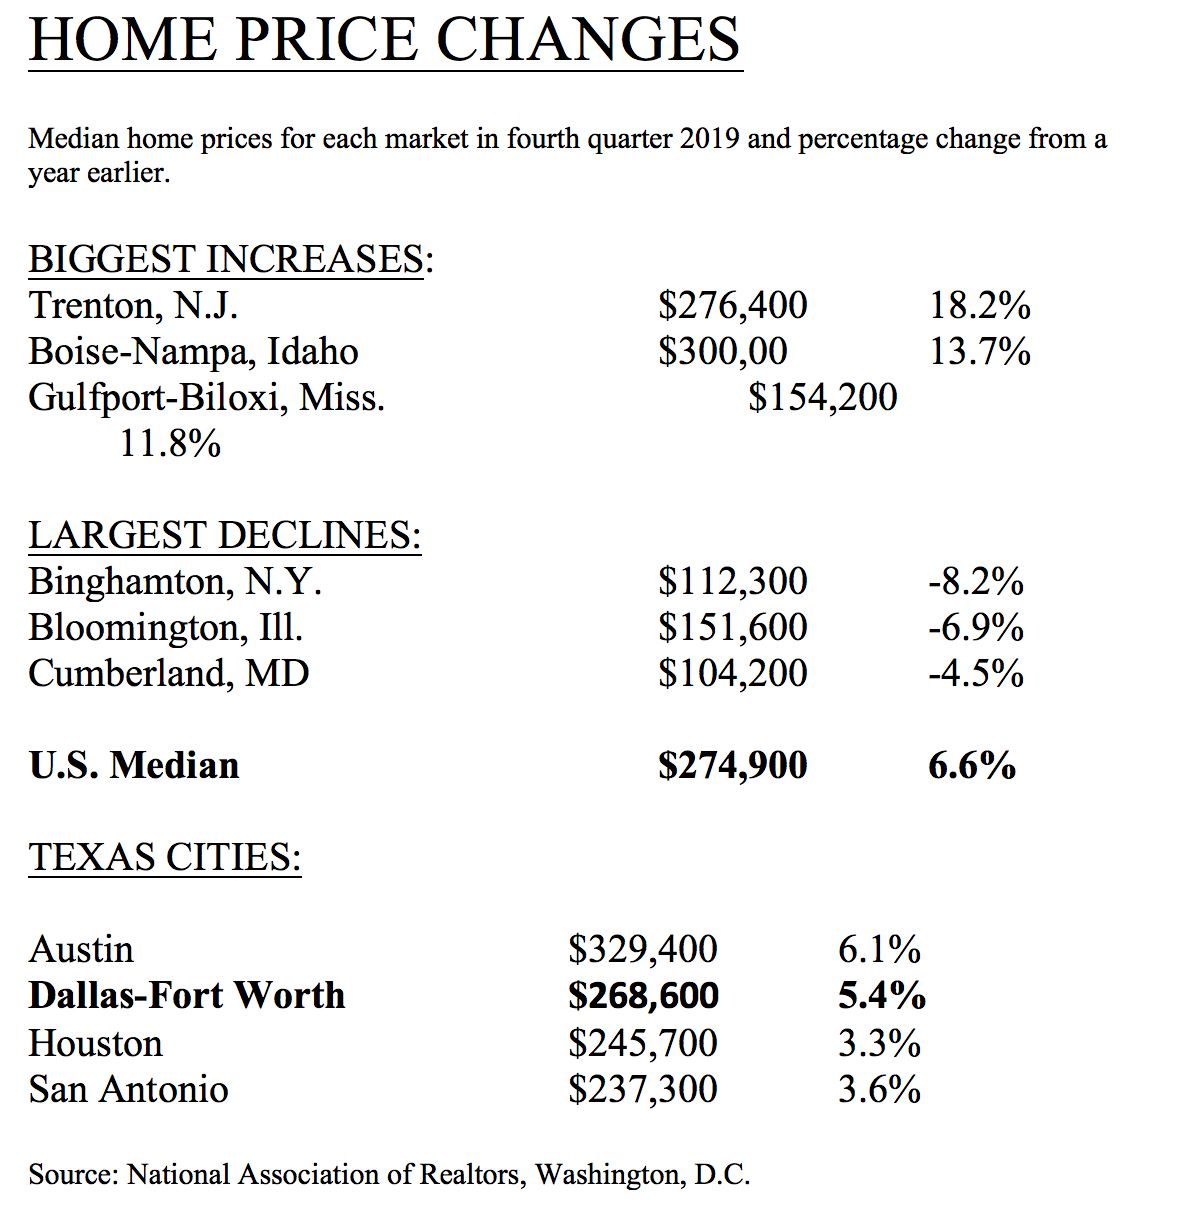 D-FW median home prices were 5.4% higher in the fourth quarter compared with a year earlier.